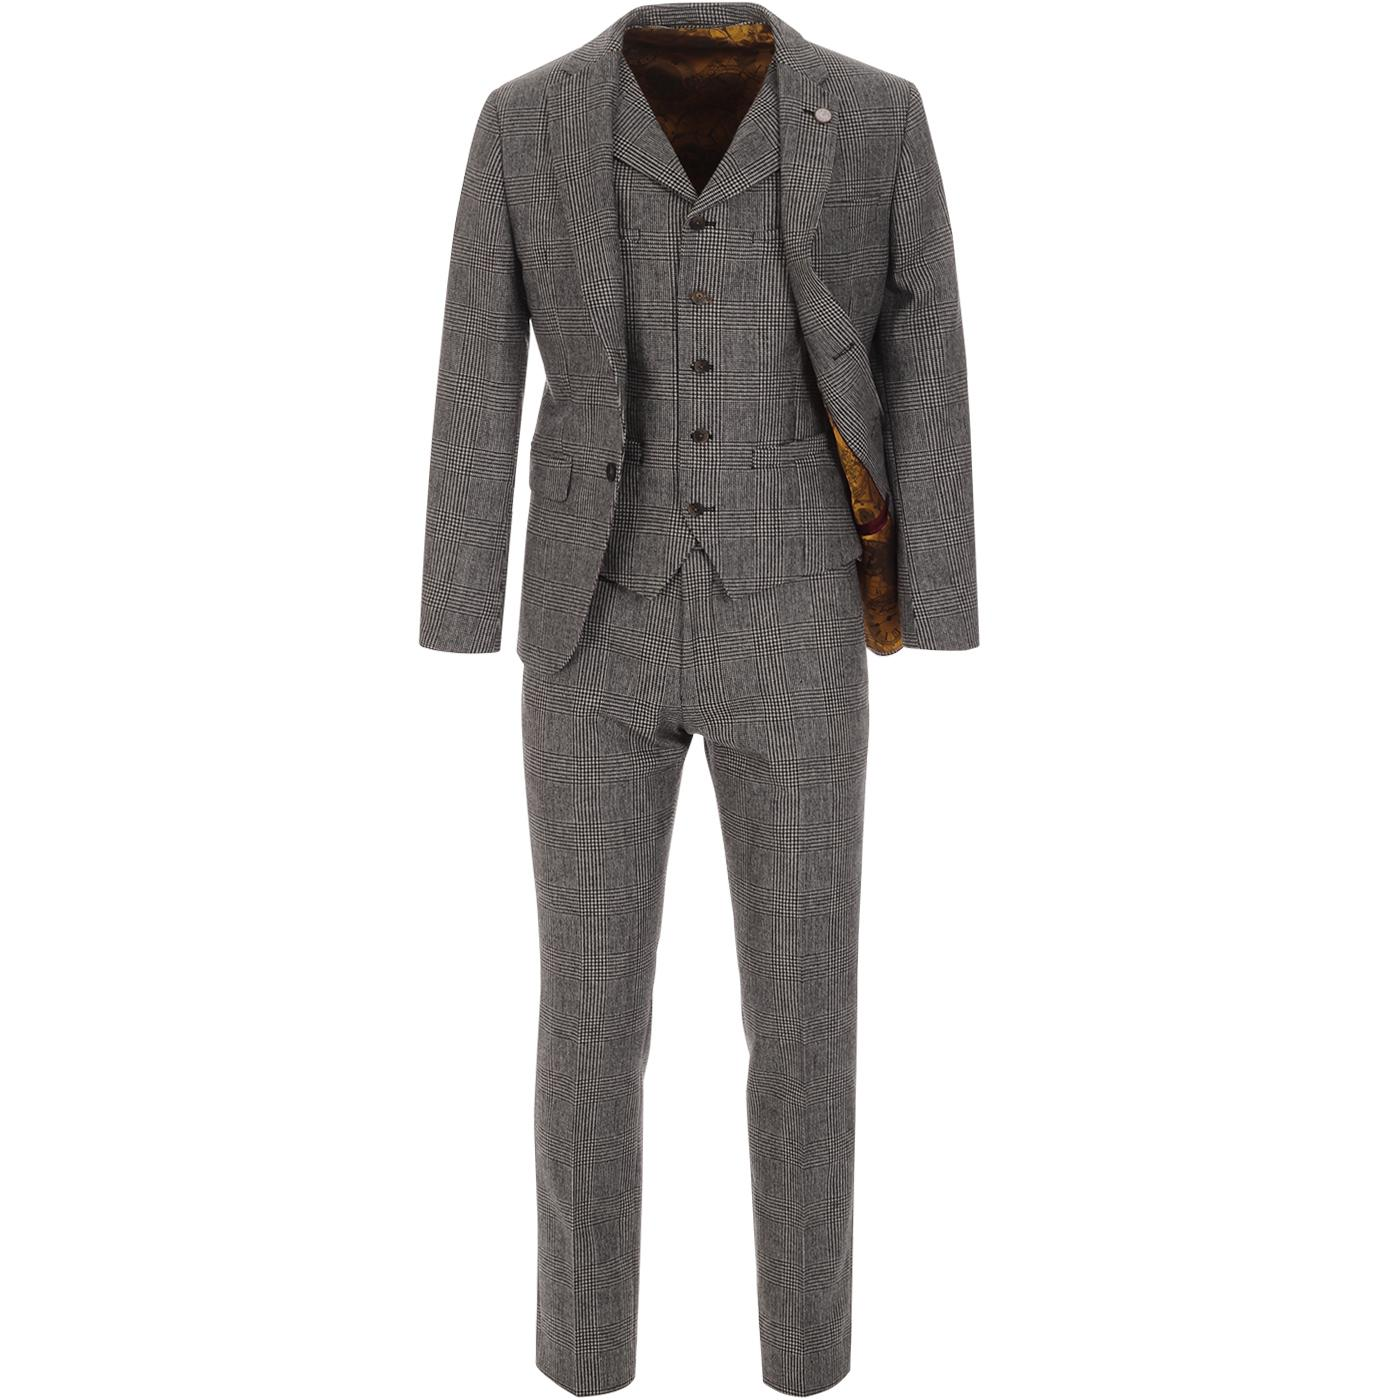 GIBSON LONDON Retro Mod Prince of Wales Suit